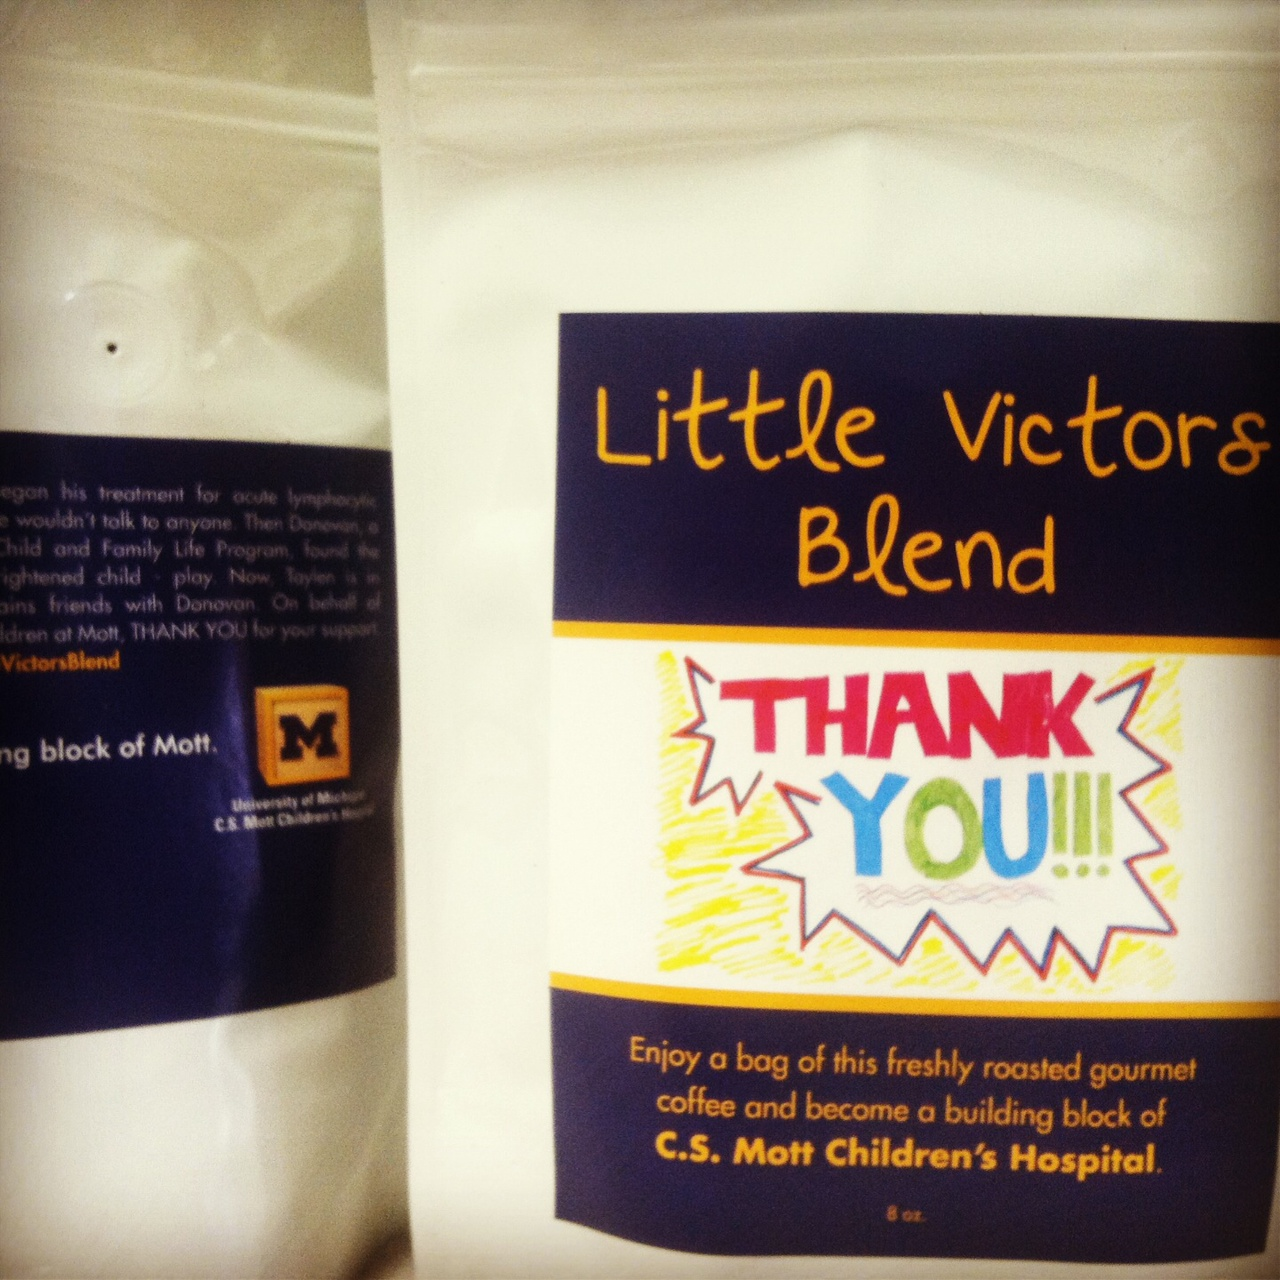 Little Victors Blend front_back.JPG